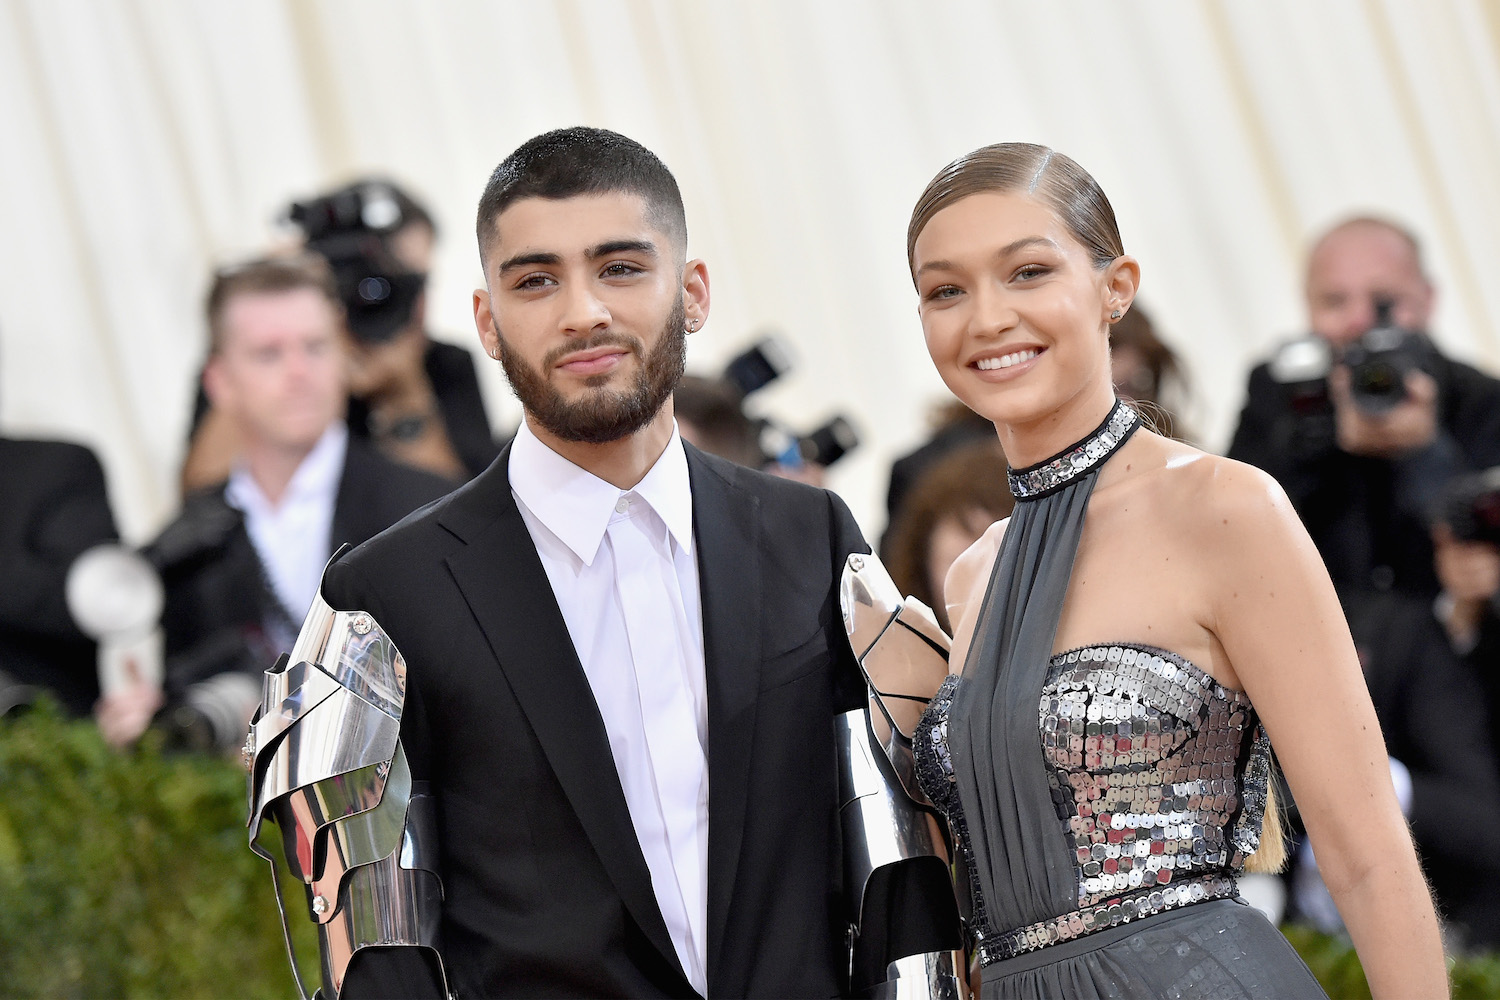 Here's What We Know About Gigi Hadid and Zayn Malik's Net